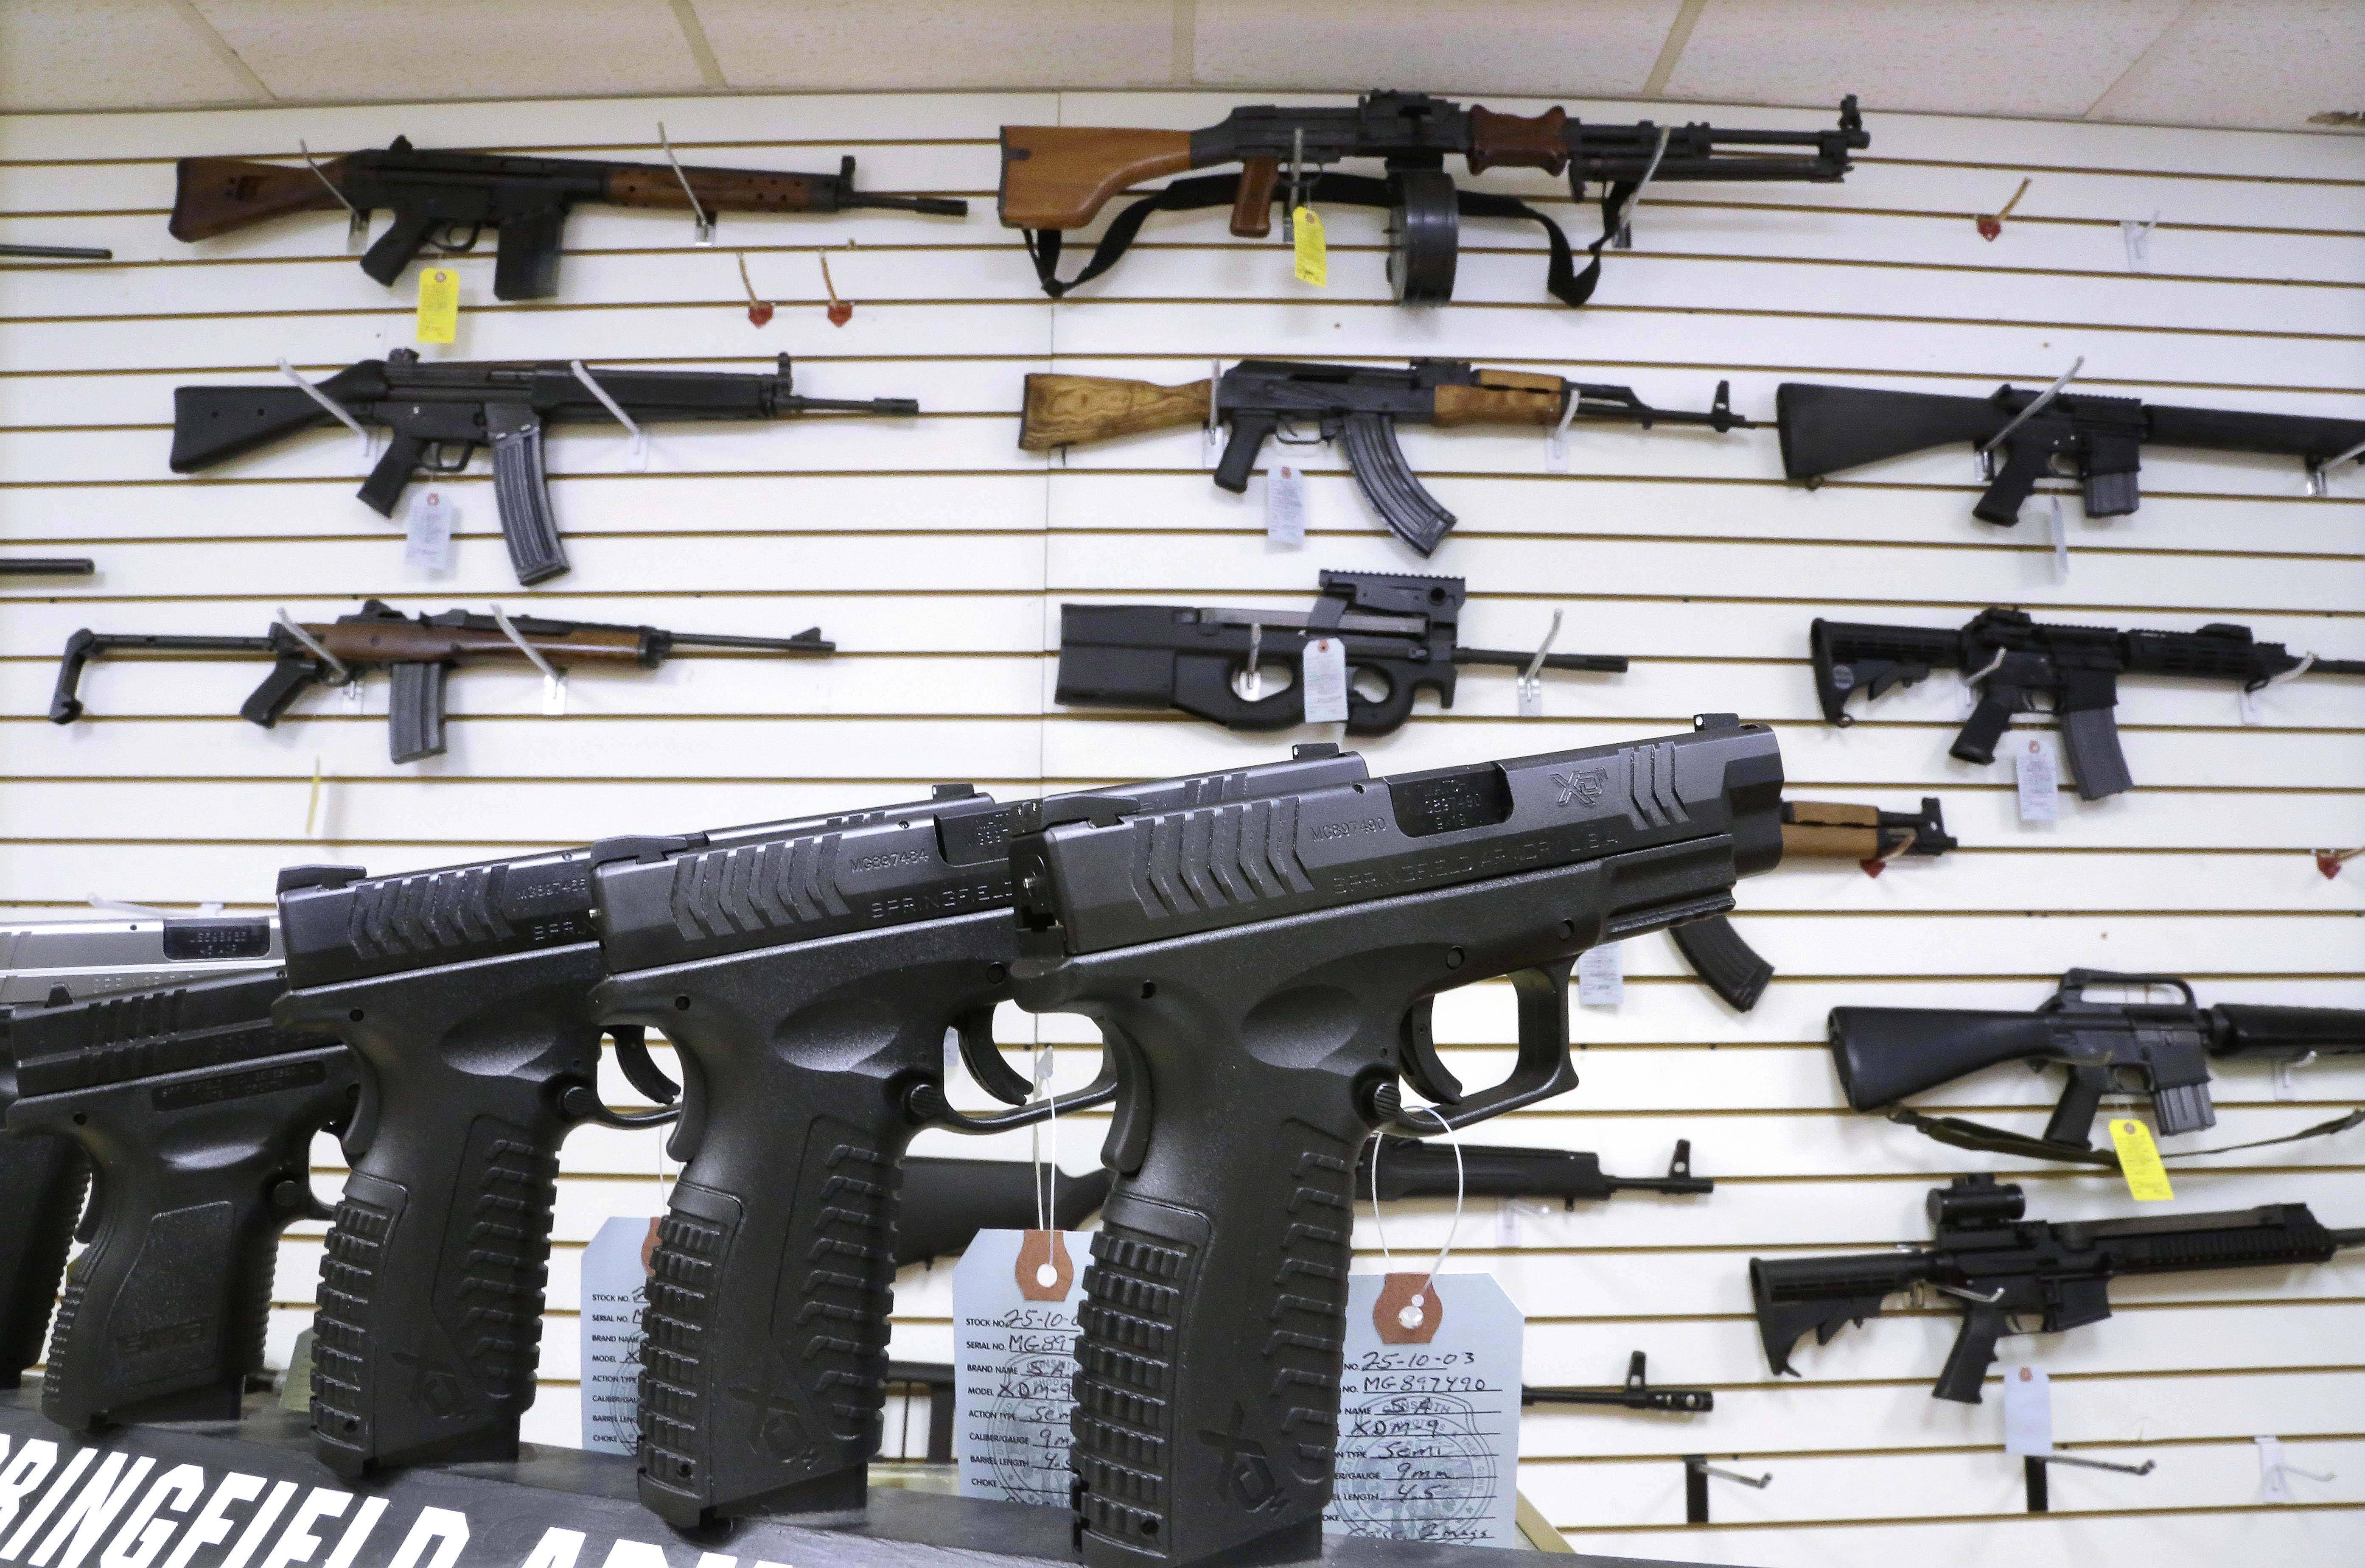 New concealed carry laws mean some employees can bring guns to work.